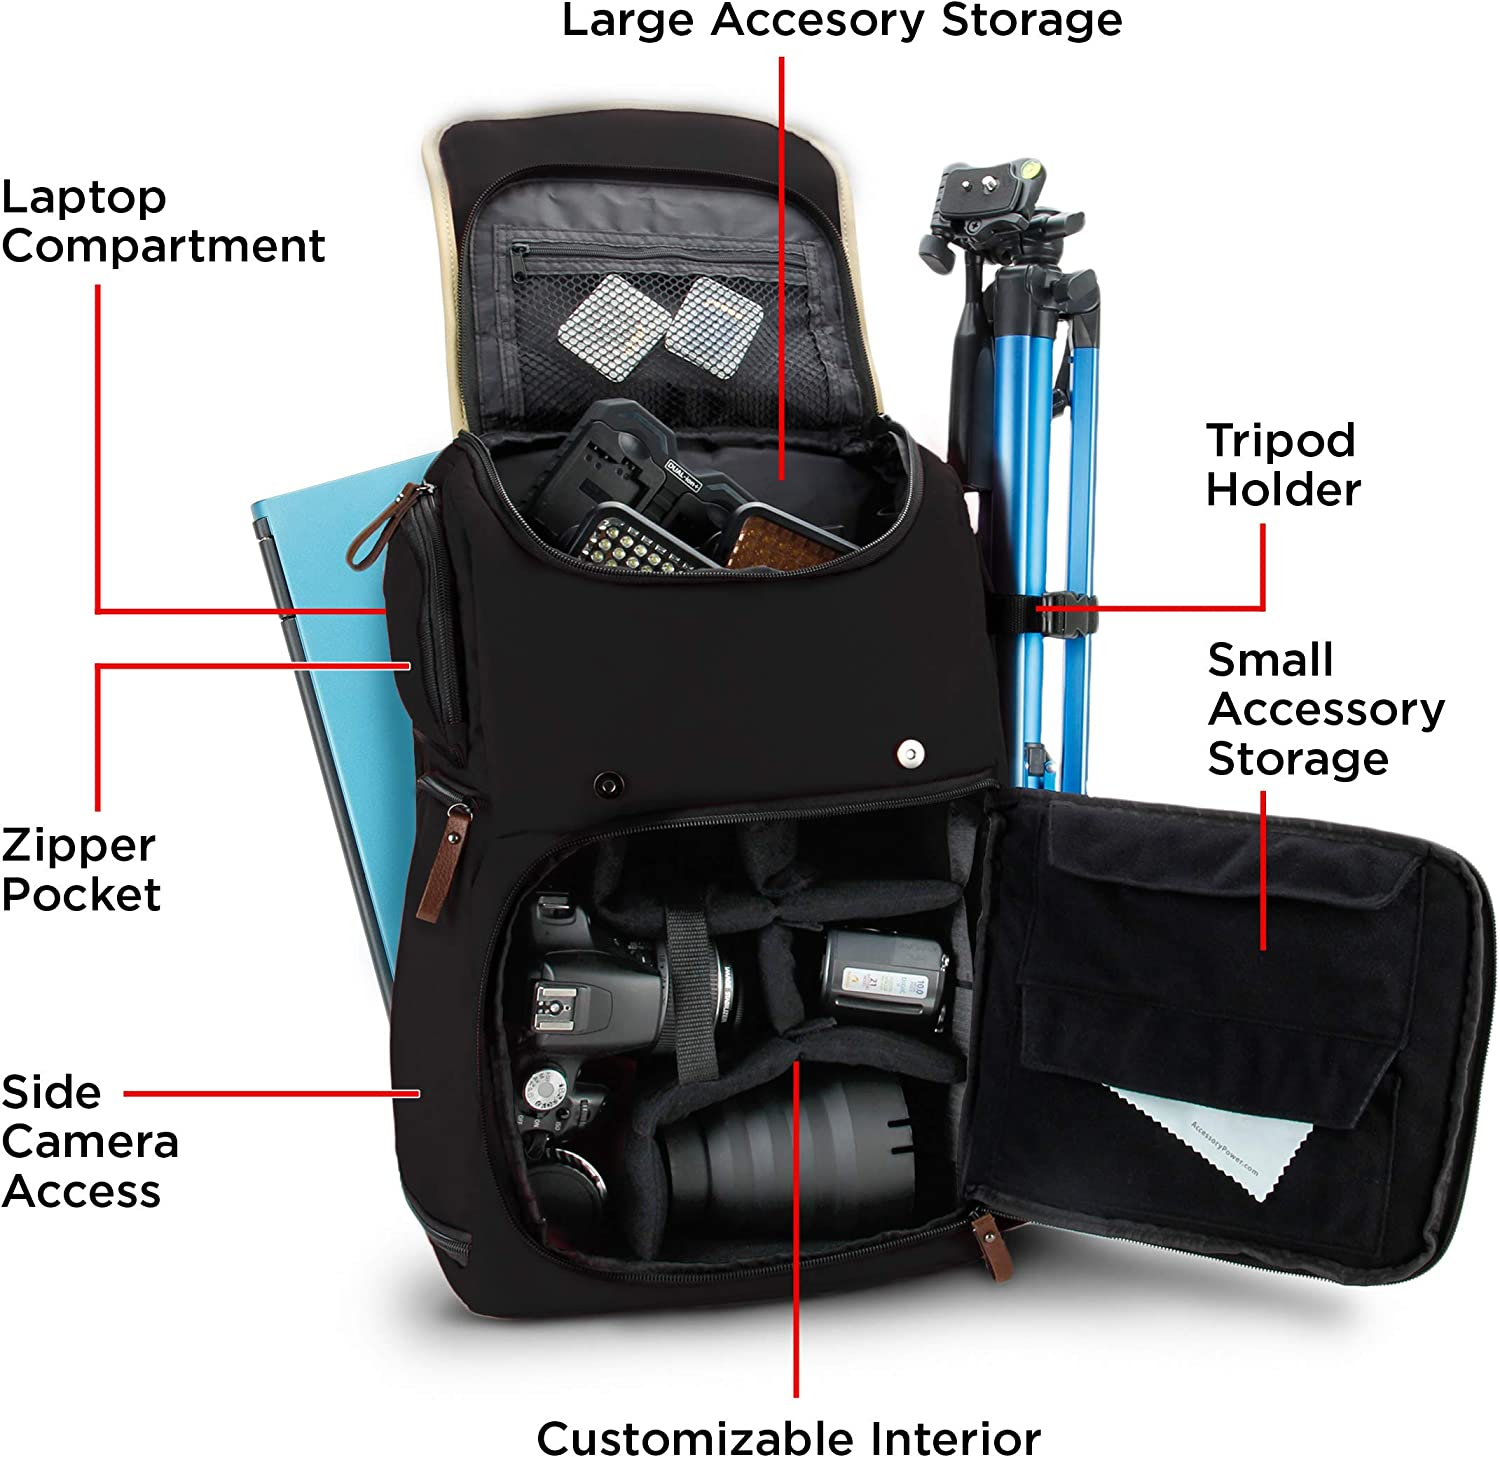 Tan GOgroove Full-Size DSLR Photography Backpack Case Tripod Holder Accessory Storage for Camera and Laptop with 15.6 inch Laptop Space Long-Lasting Durability and Weatherproof Rain Cover